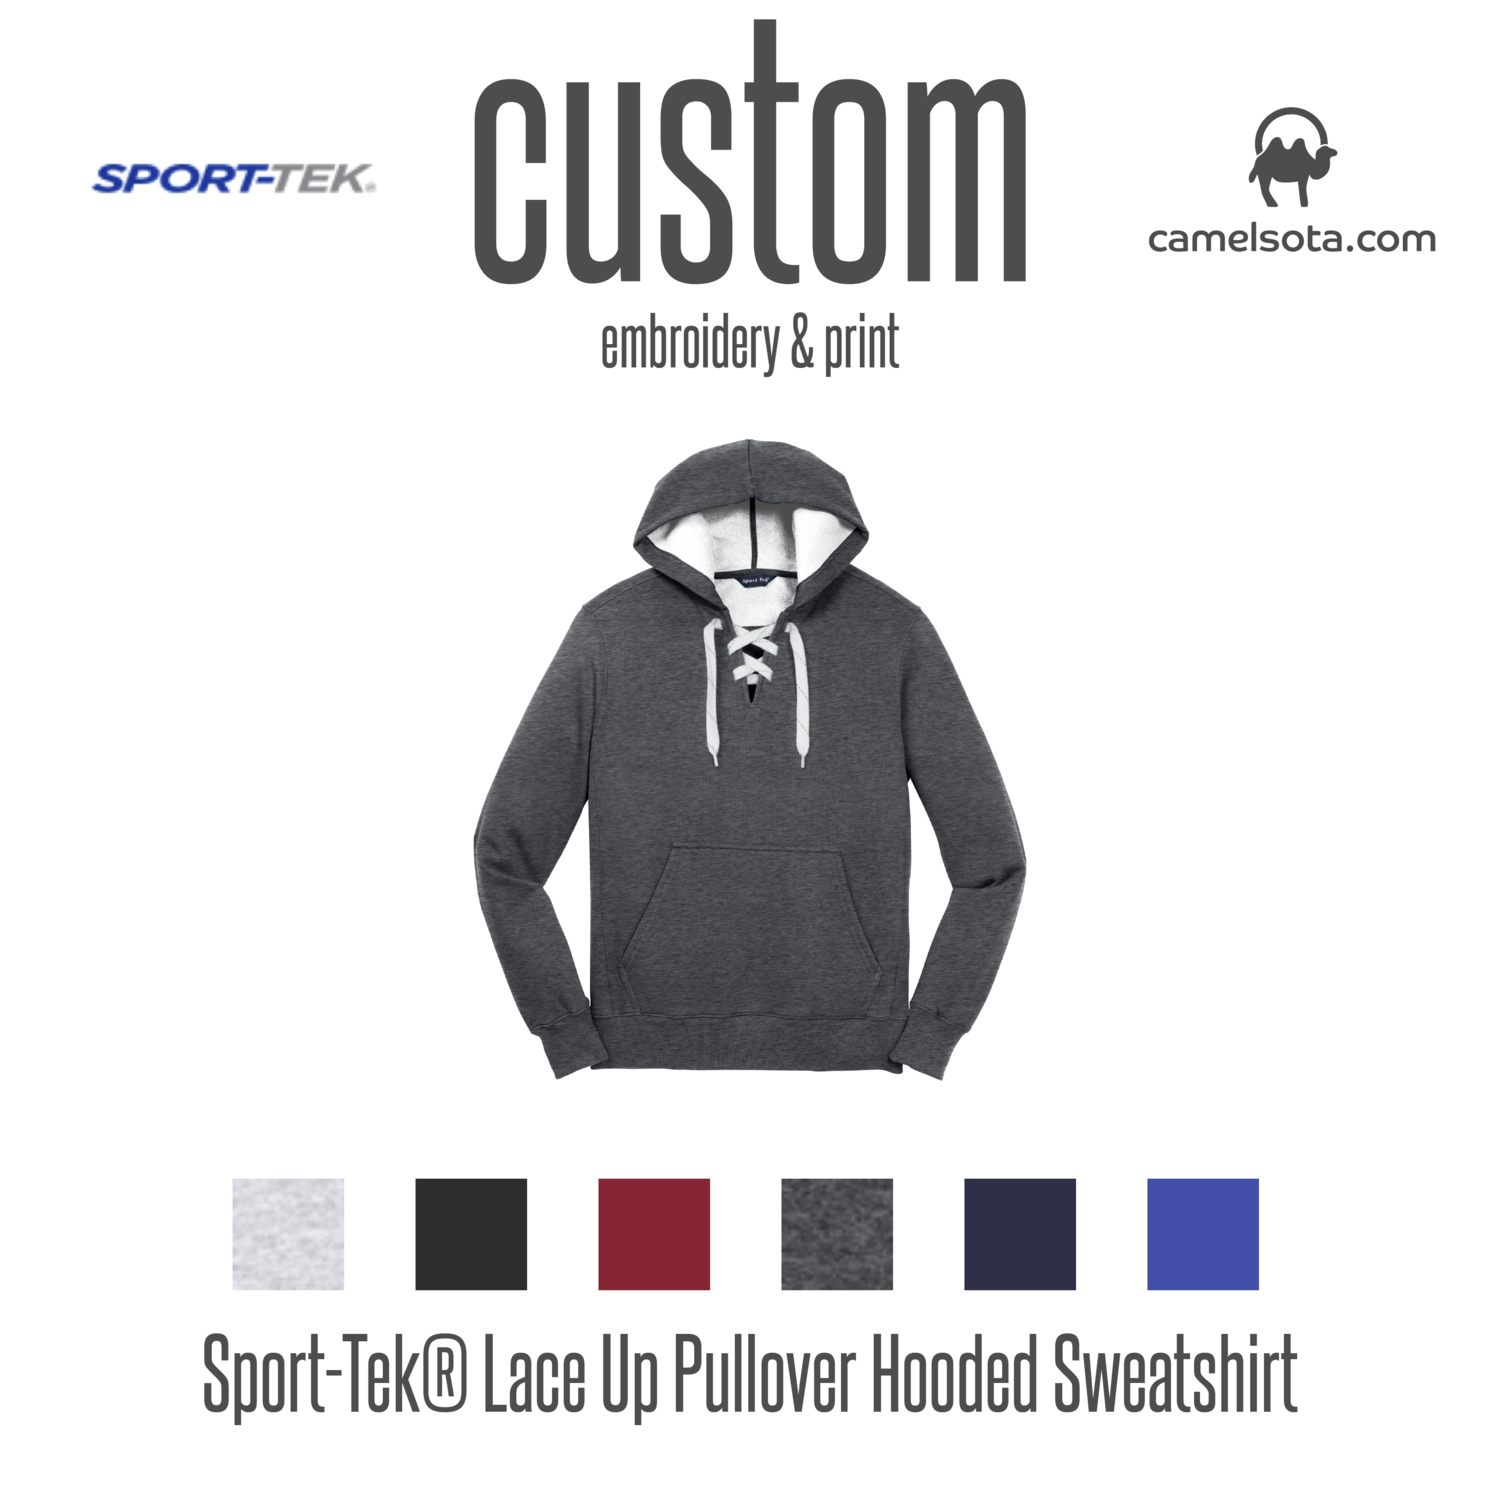 Custom Sport-Tek Lace Up Pullover Hooded Sweatshirt